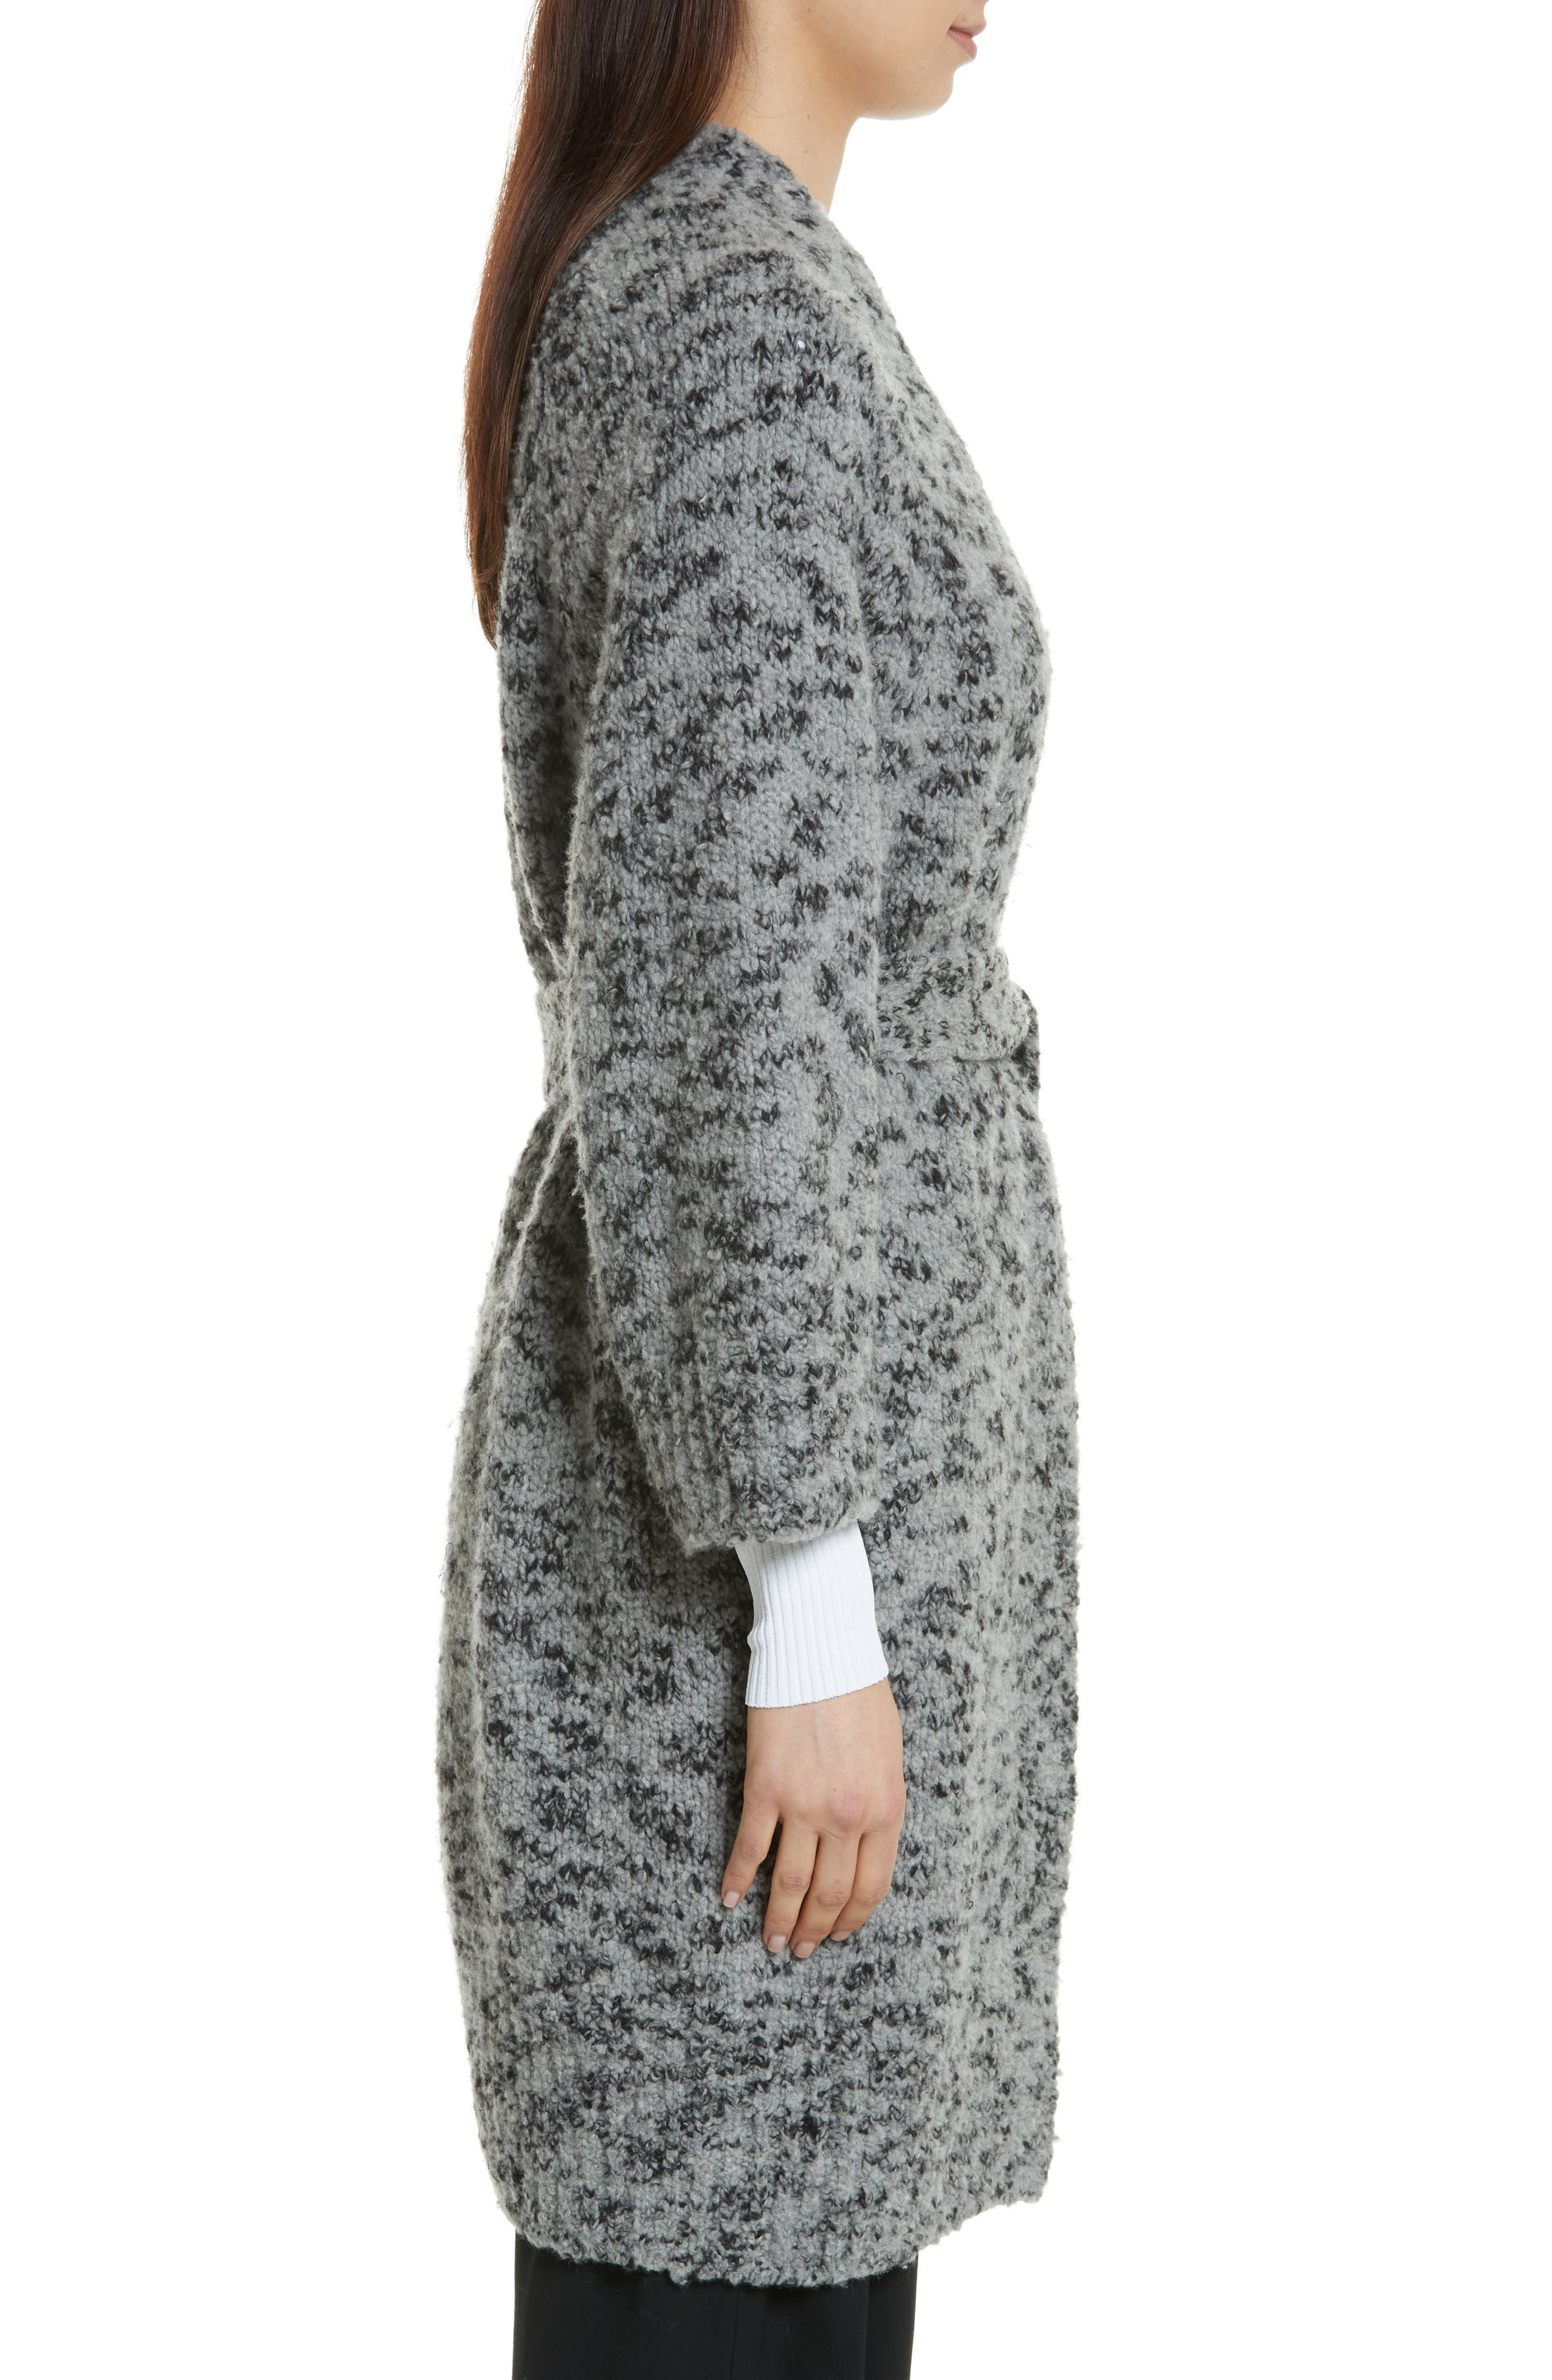 Textured Wool Blend Cardigan,                             Alternate thumbnail 3, color,                             Grey/ Black